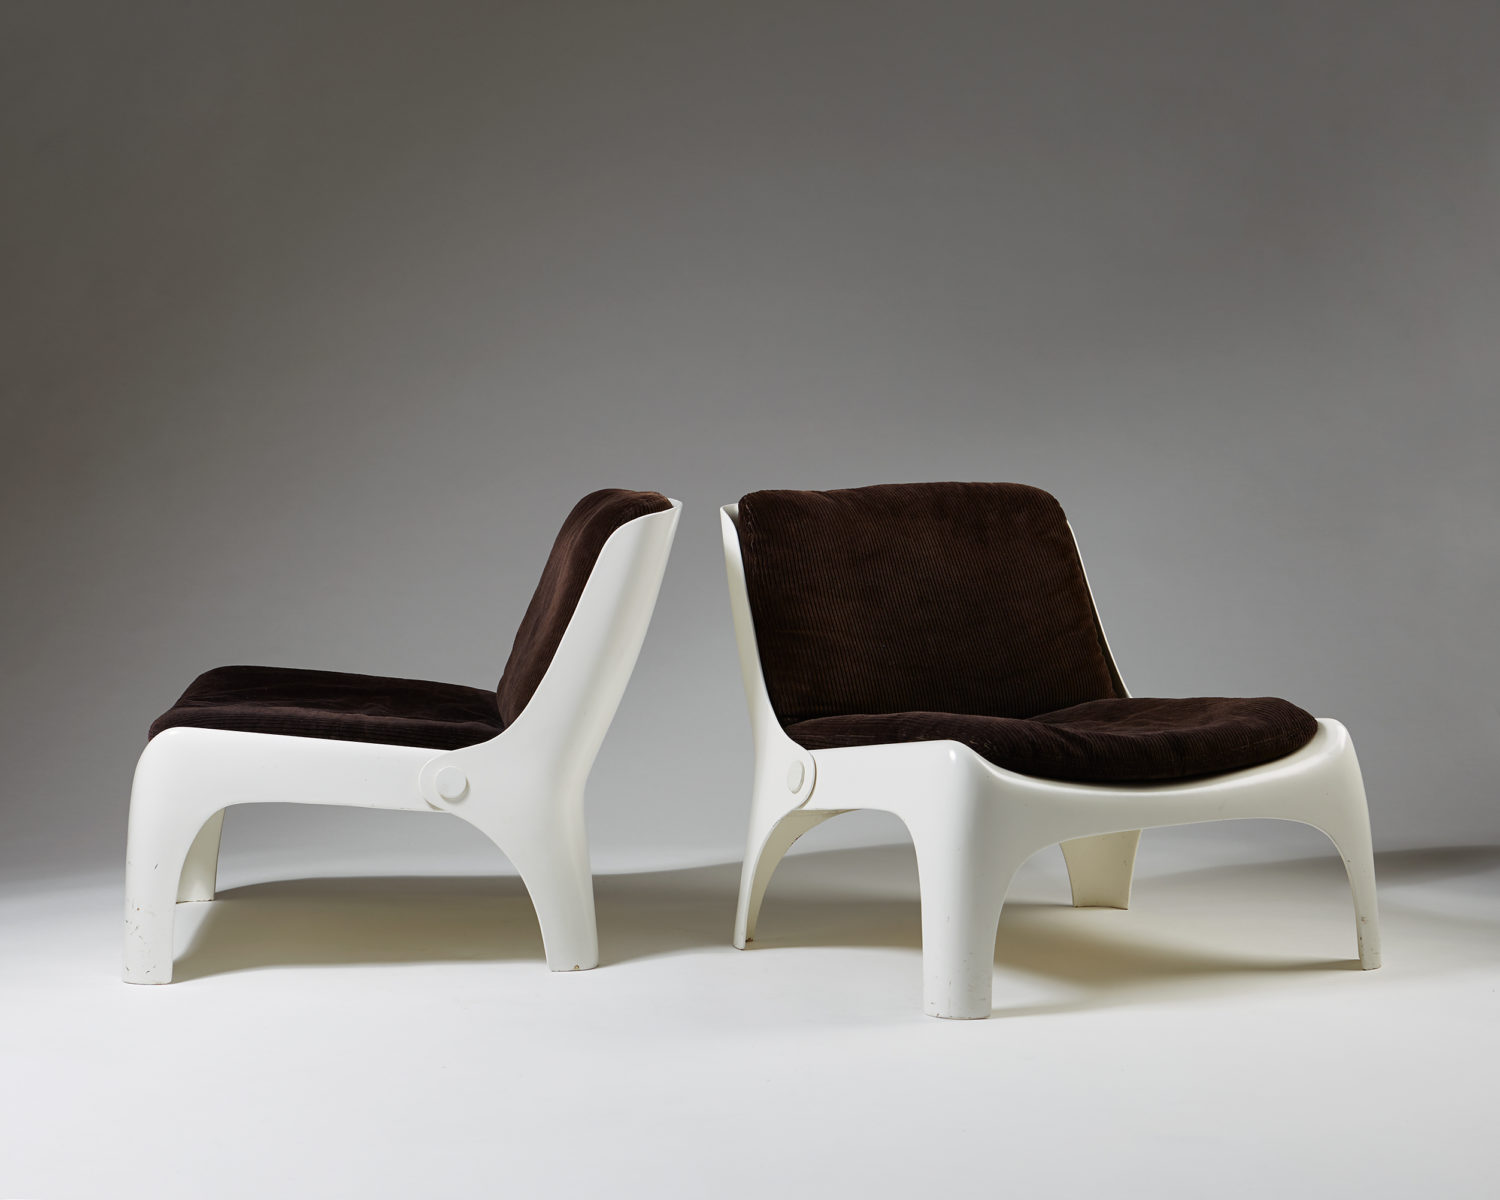 Pair of armchairs, anonymous, Italy, 1960's